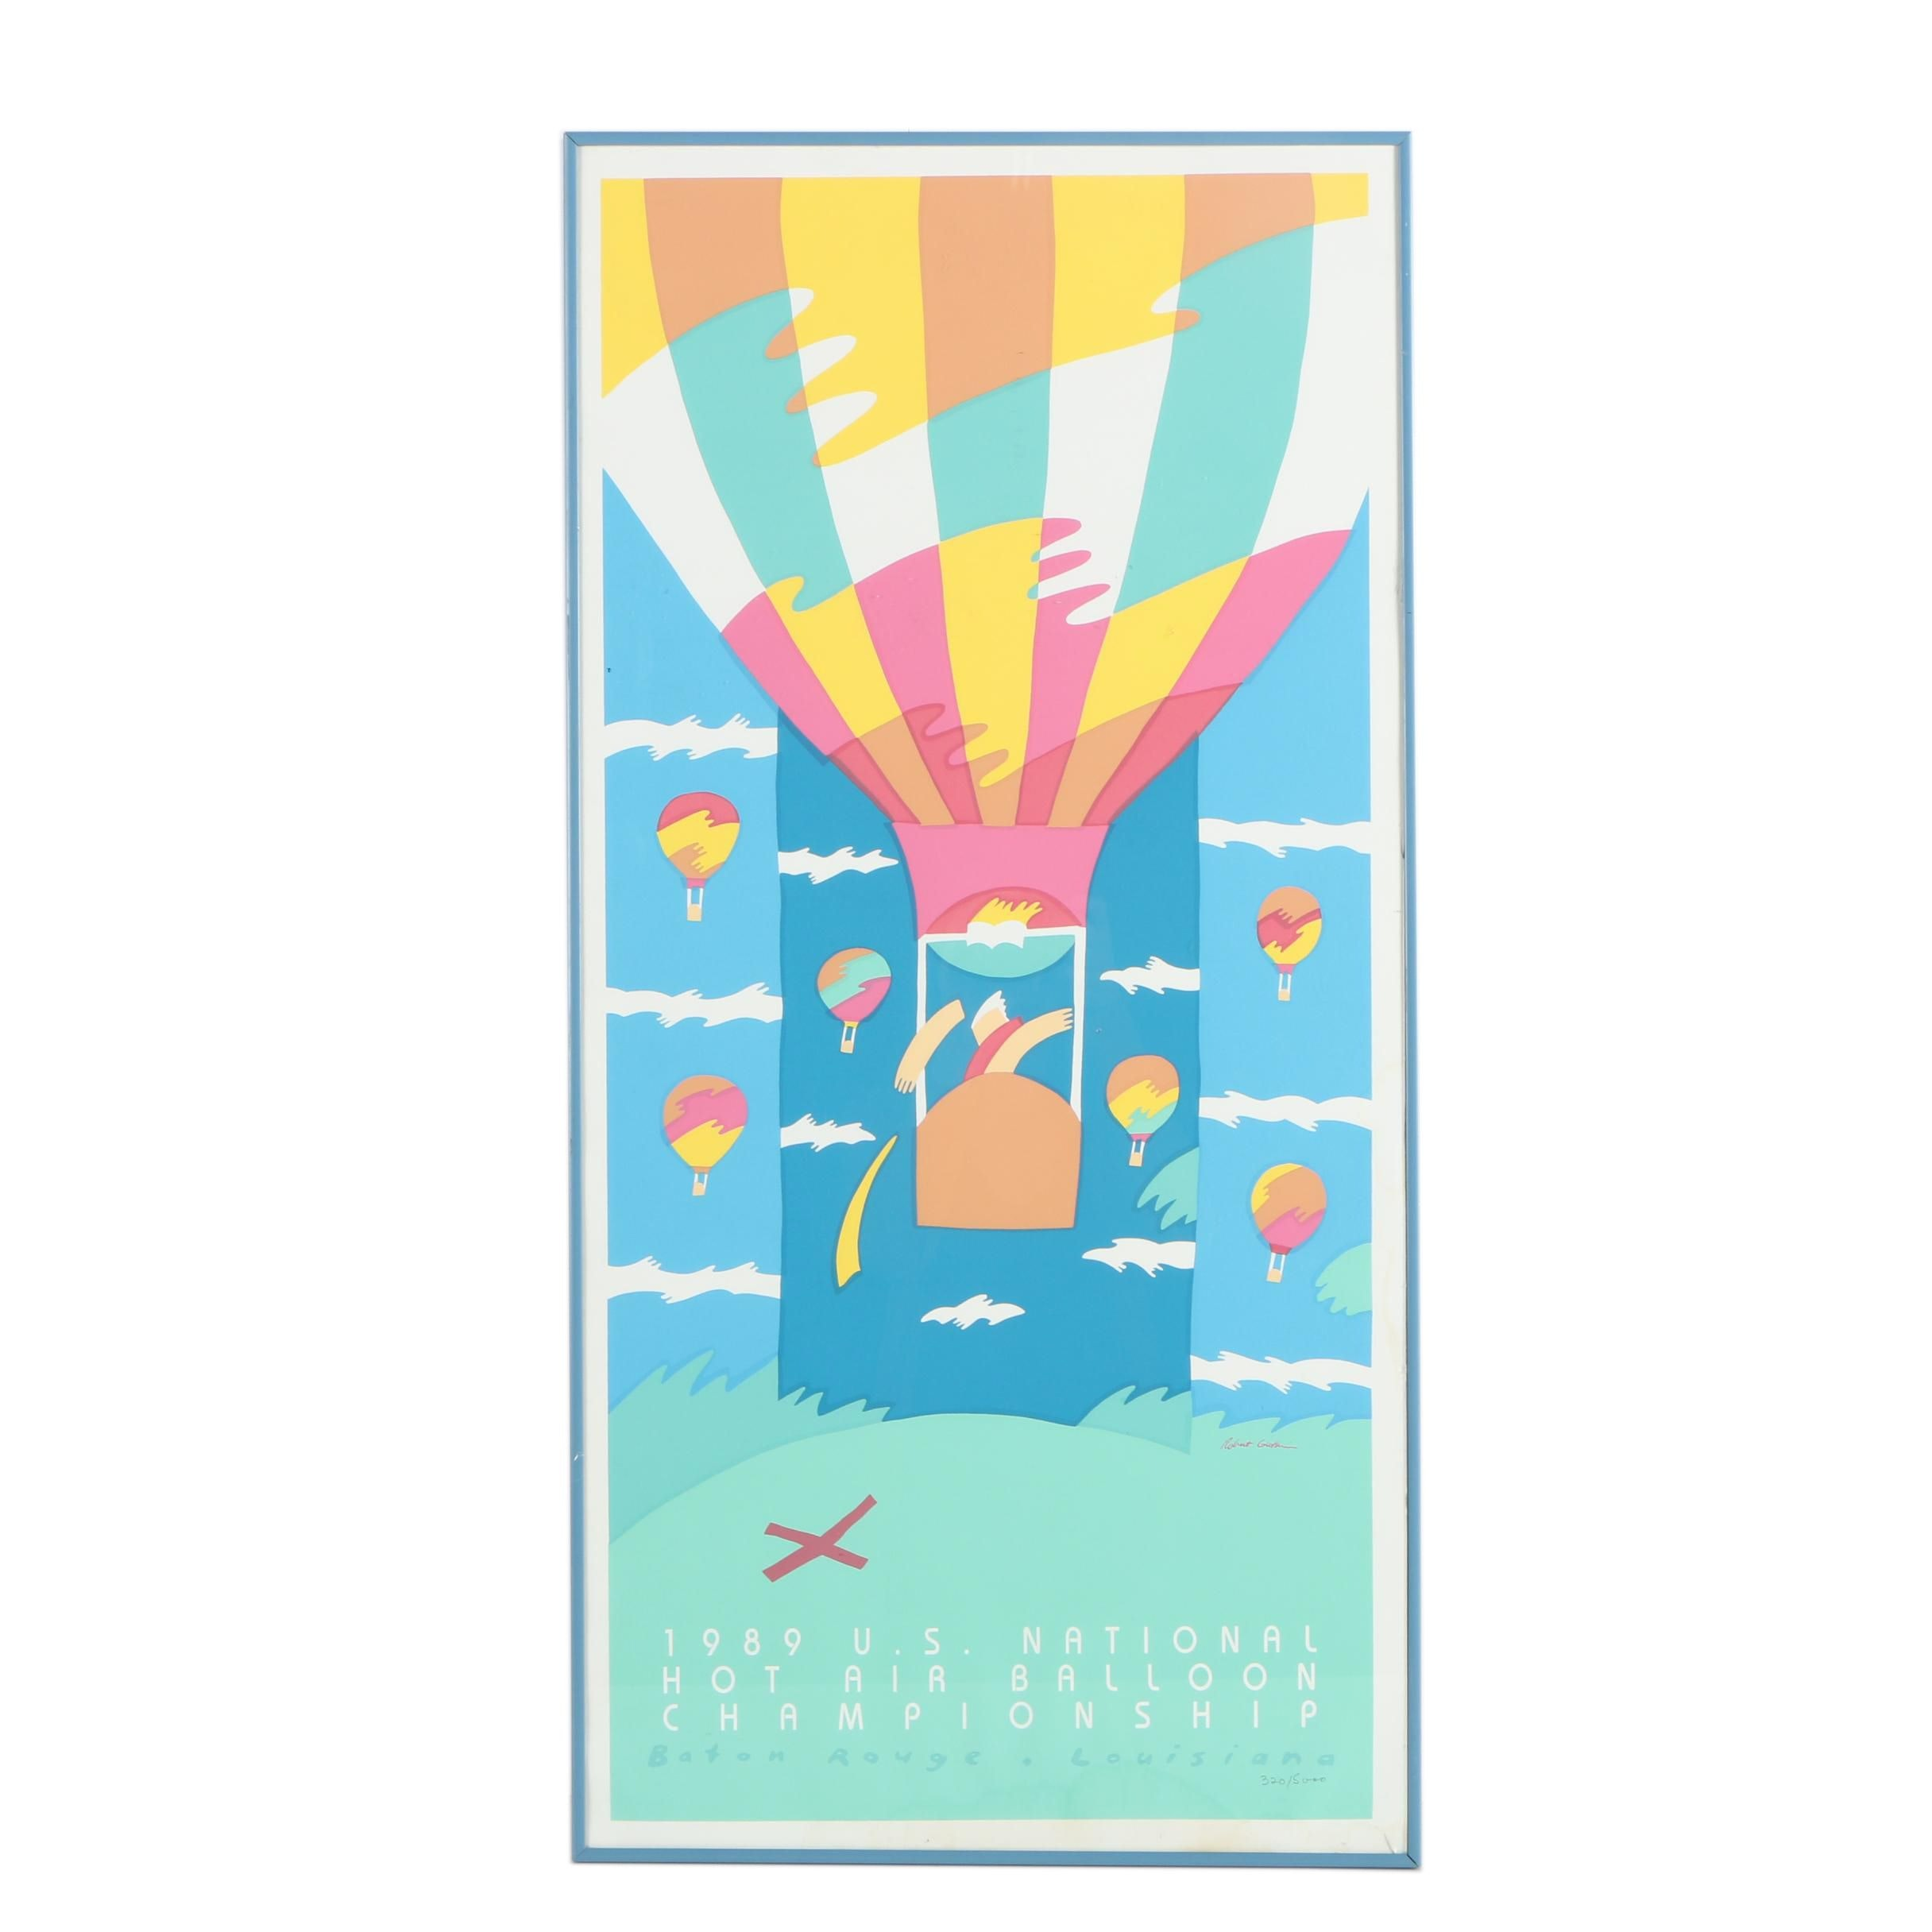 Robert Guthrie Serigraph Poster for 1989 Hot Air Balloon Competition